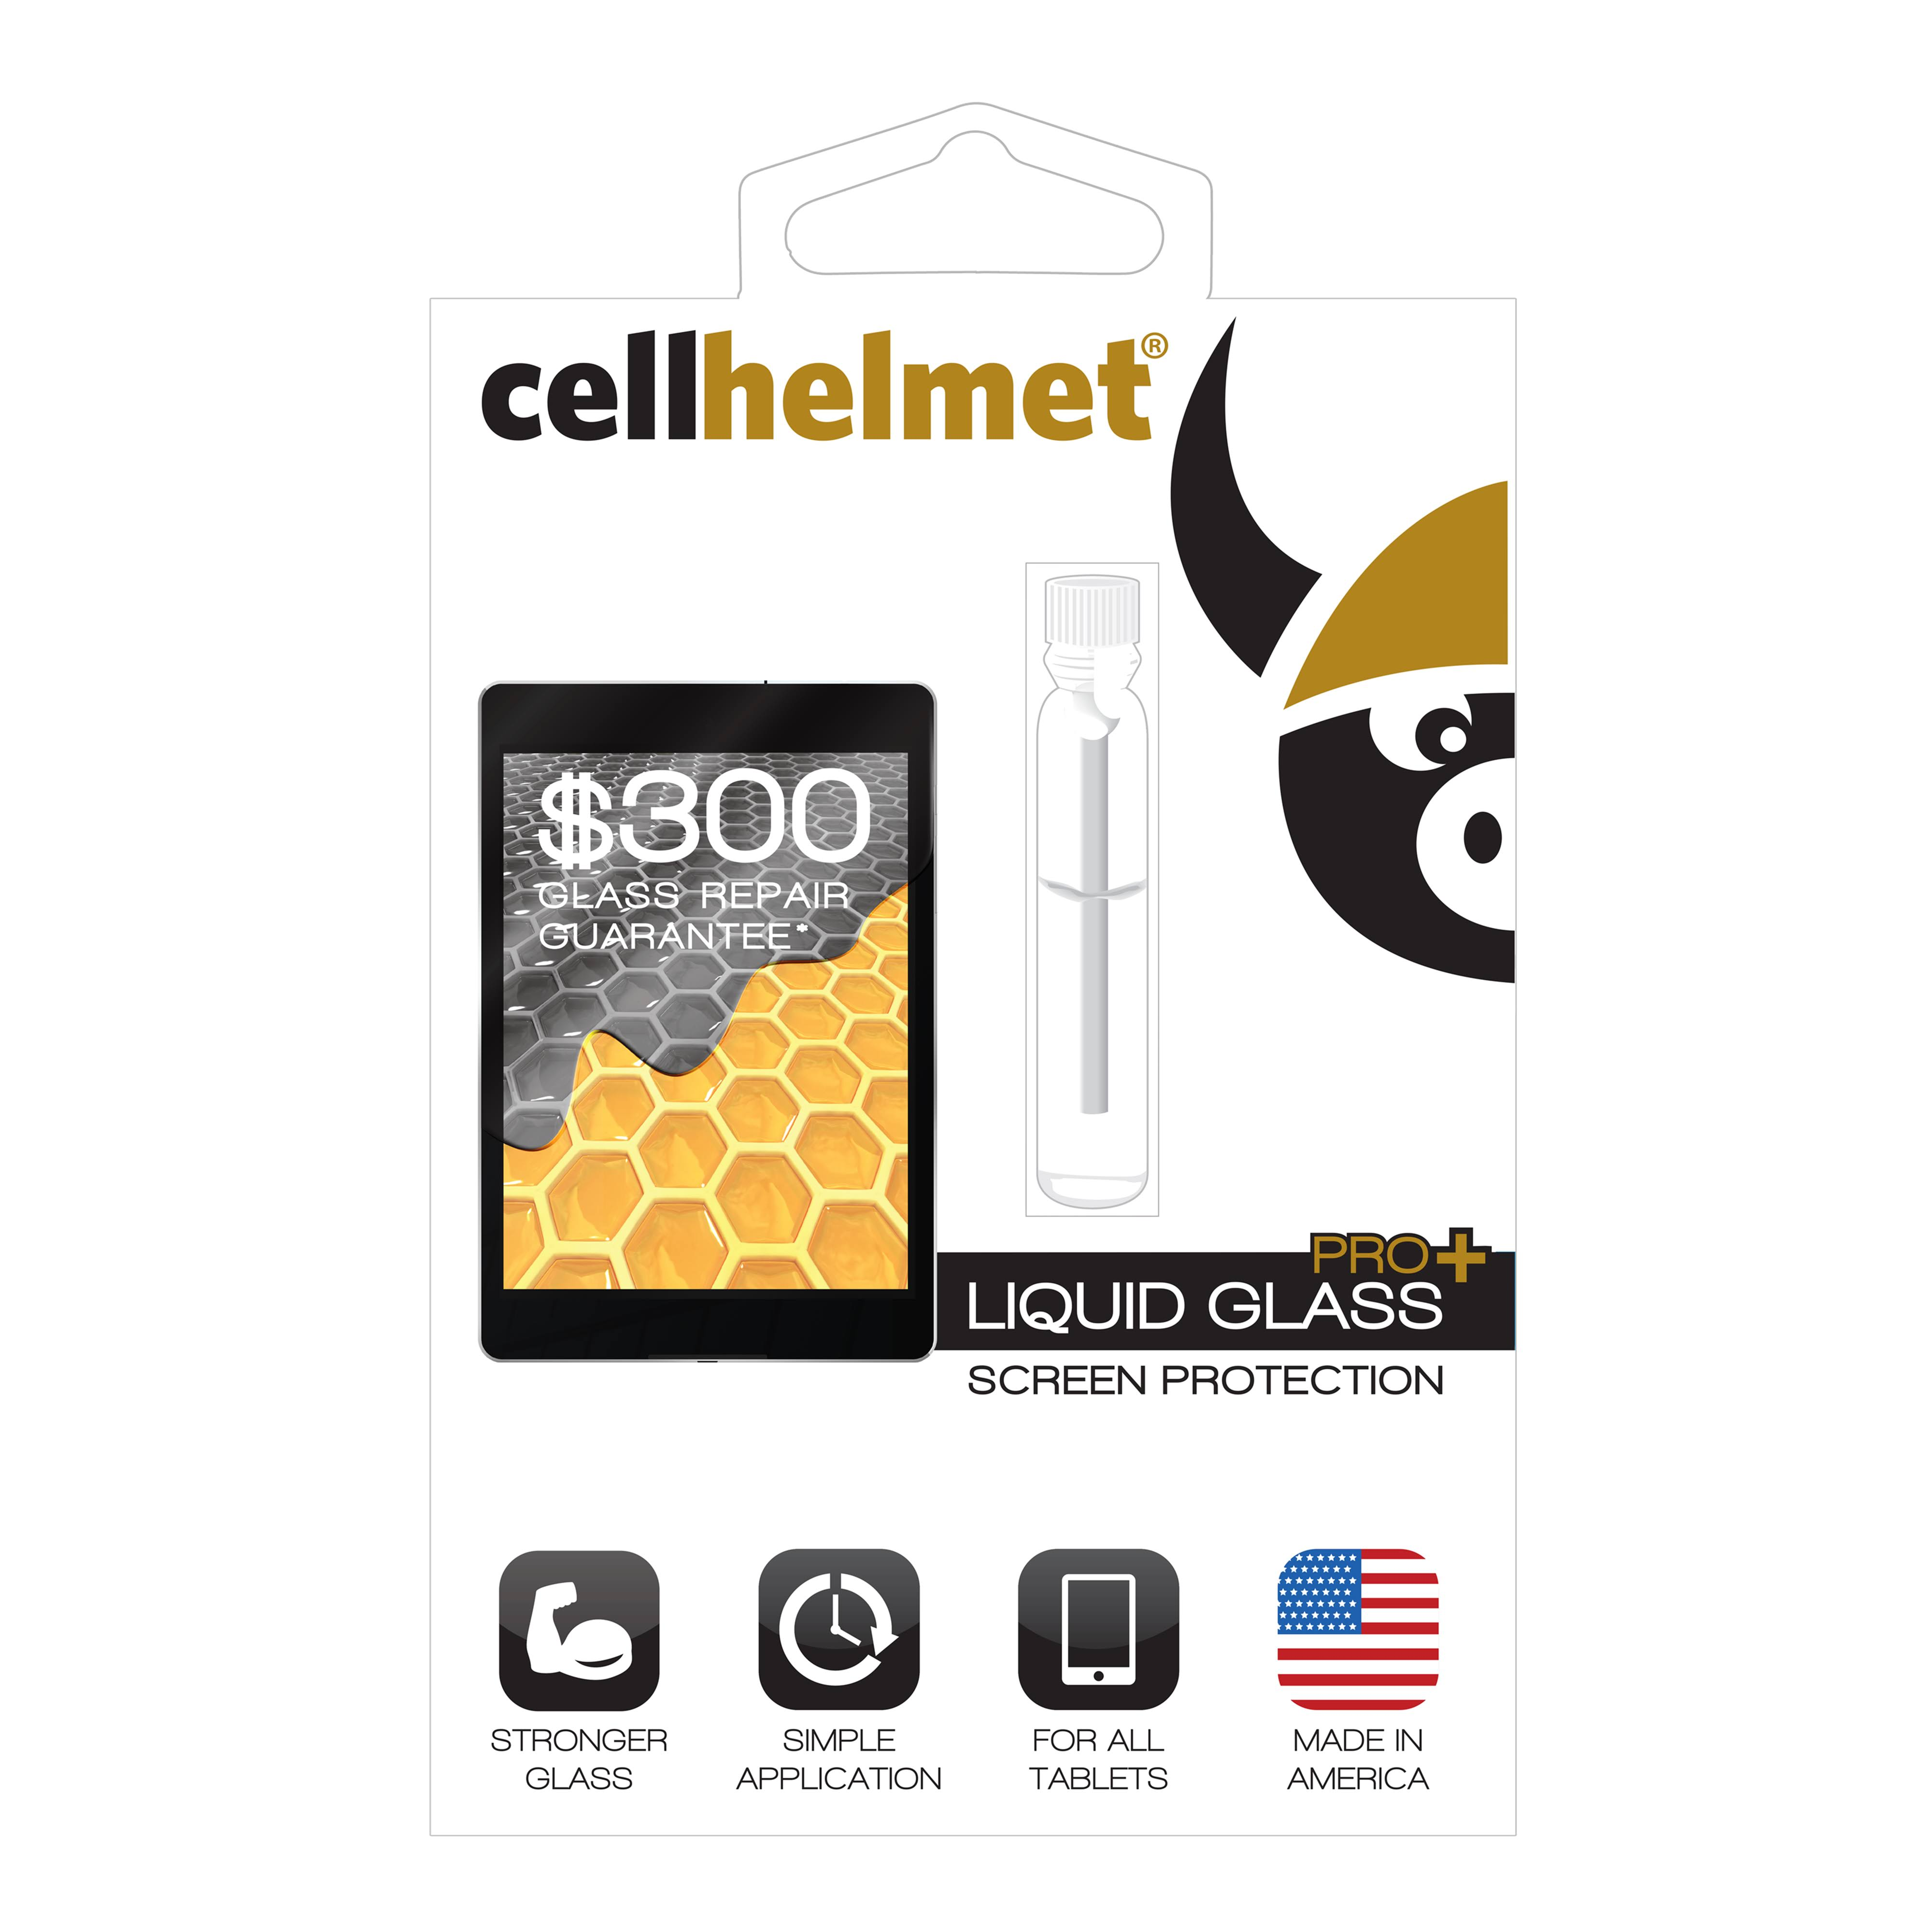 Cellhelmet Liquid Glass Pro+ Screen Protector for Tablets (300 Screen Repair Guarantee)